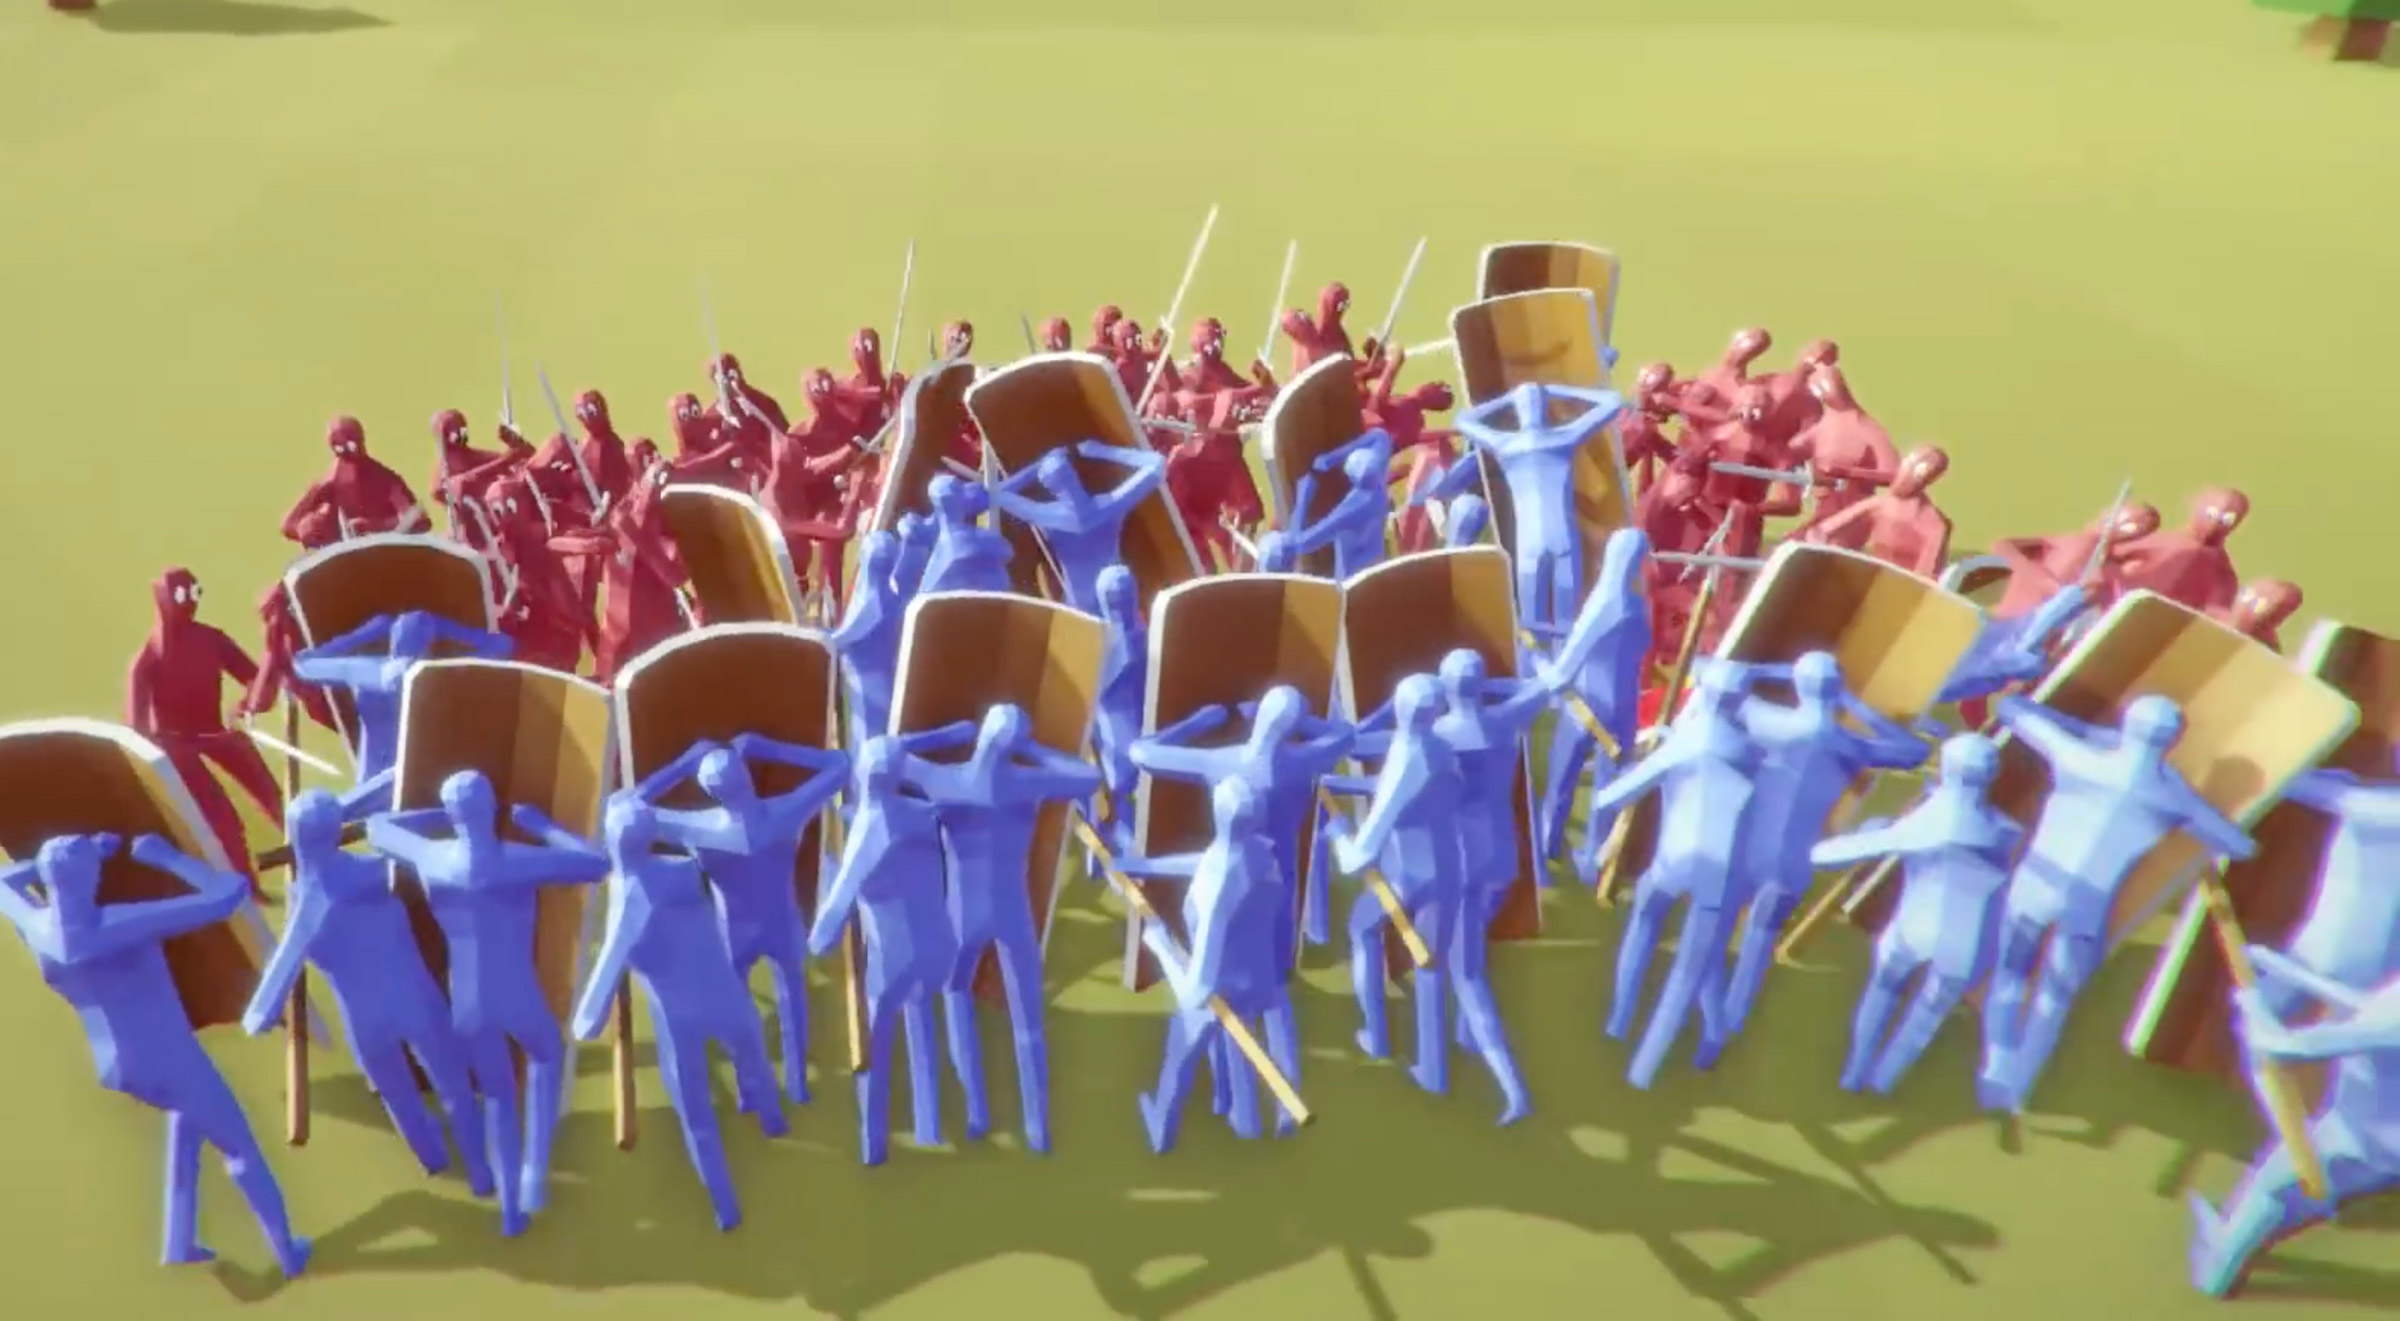 The Totally Accurate Battle Simulator